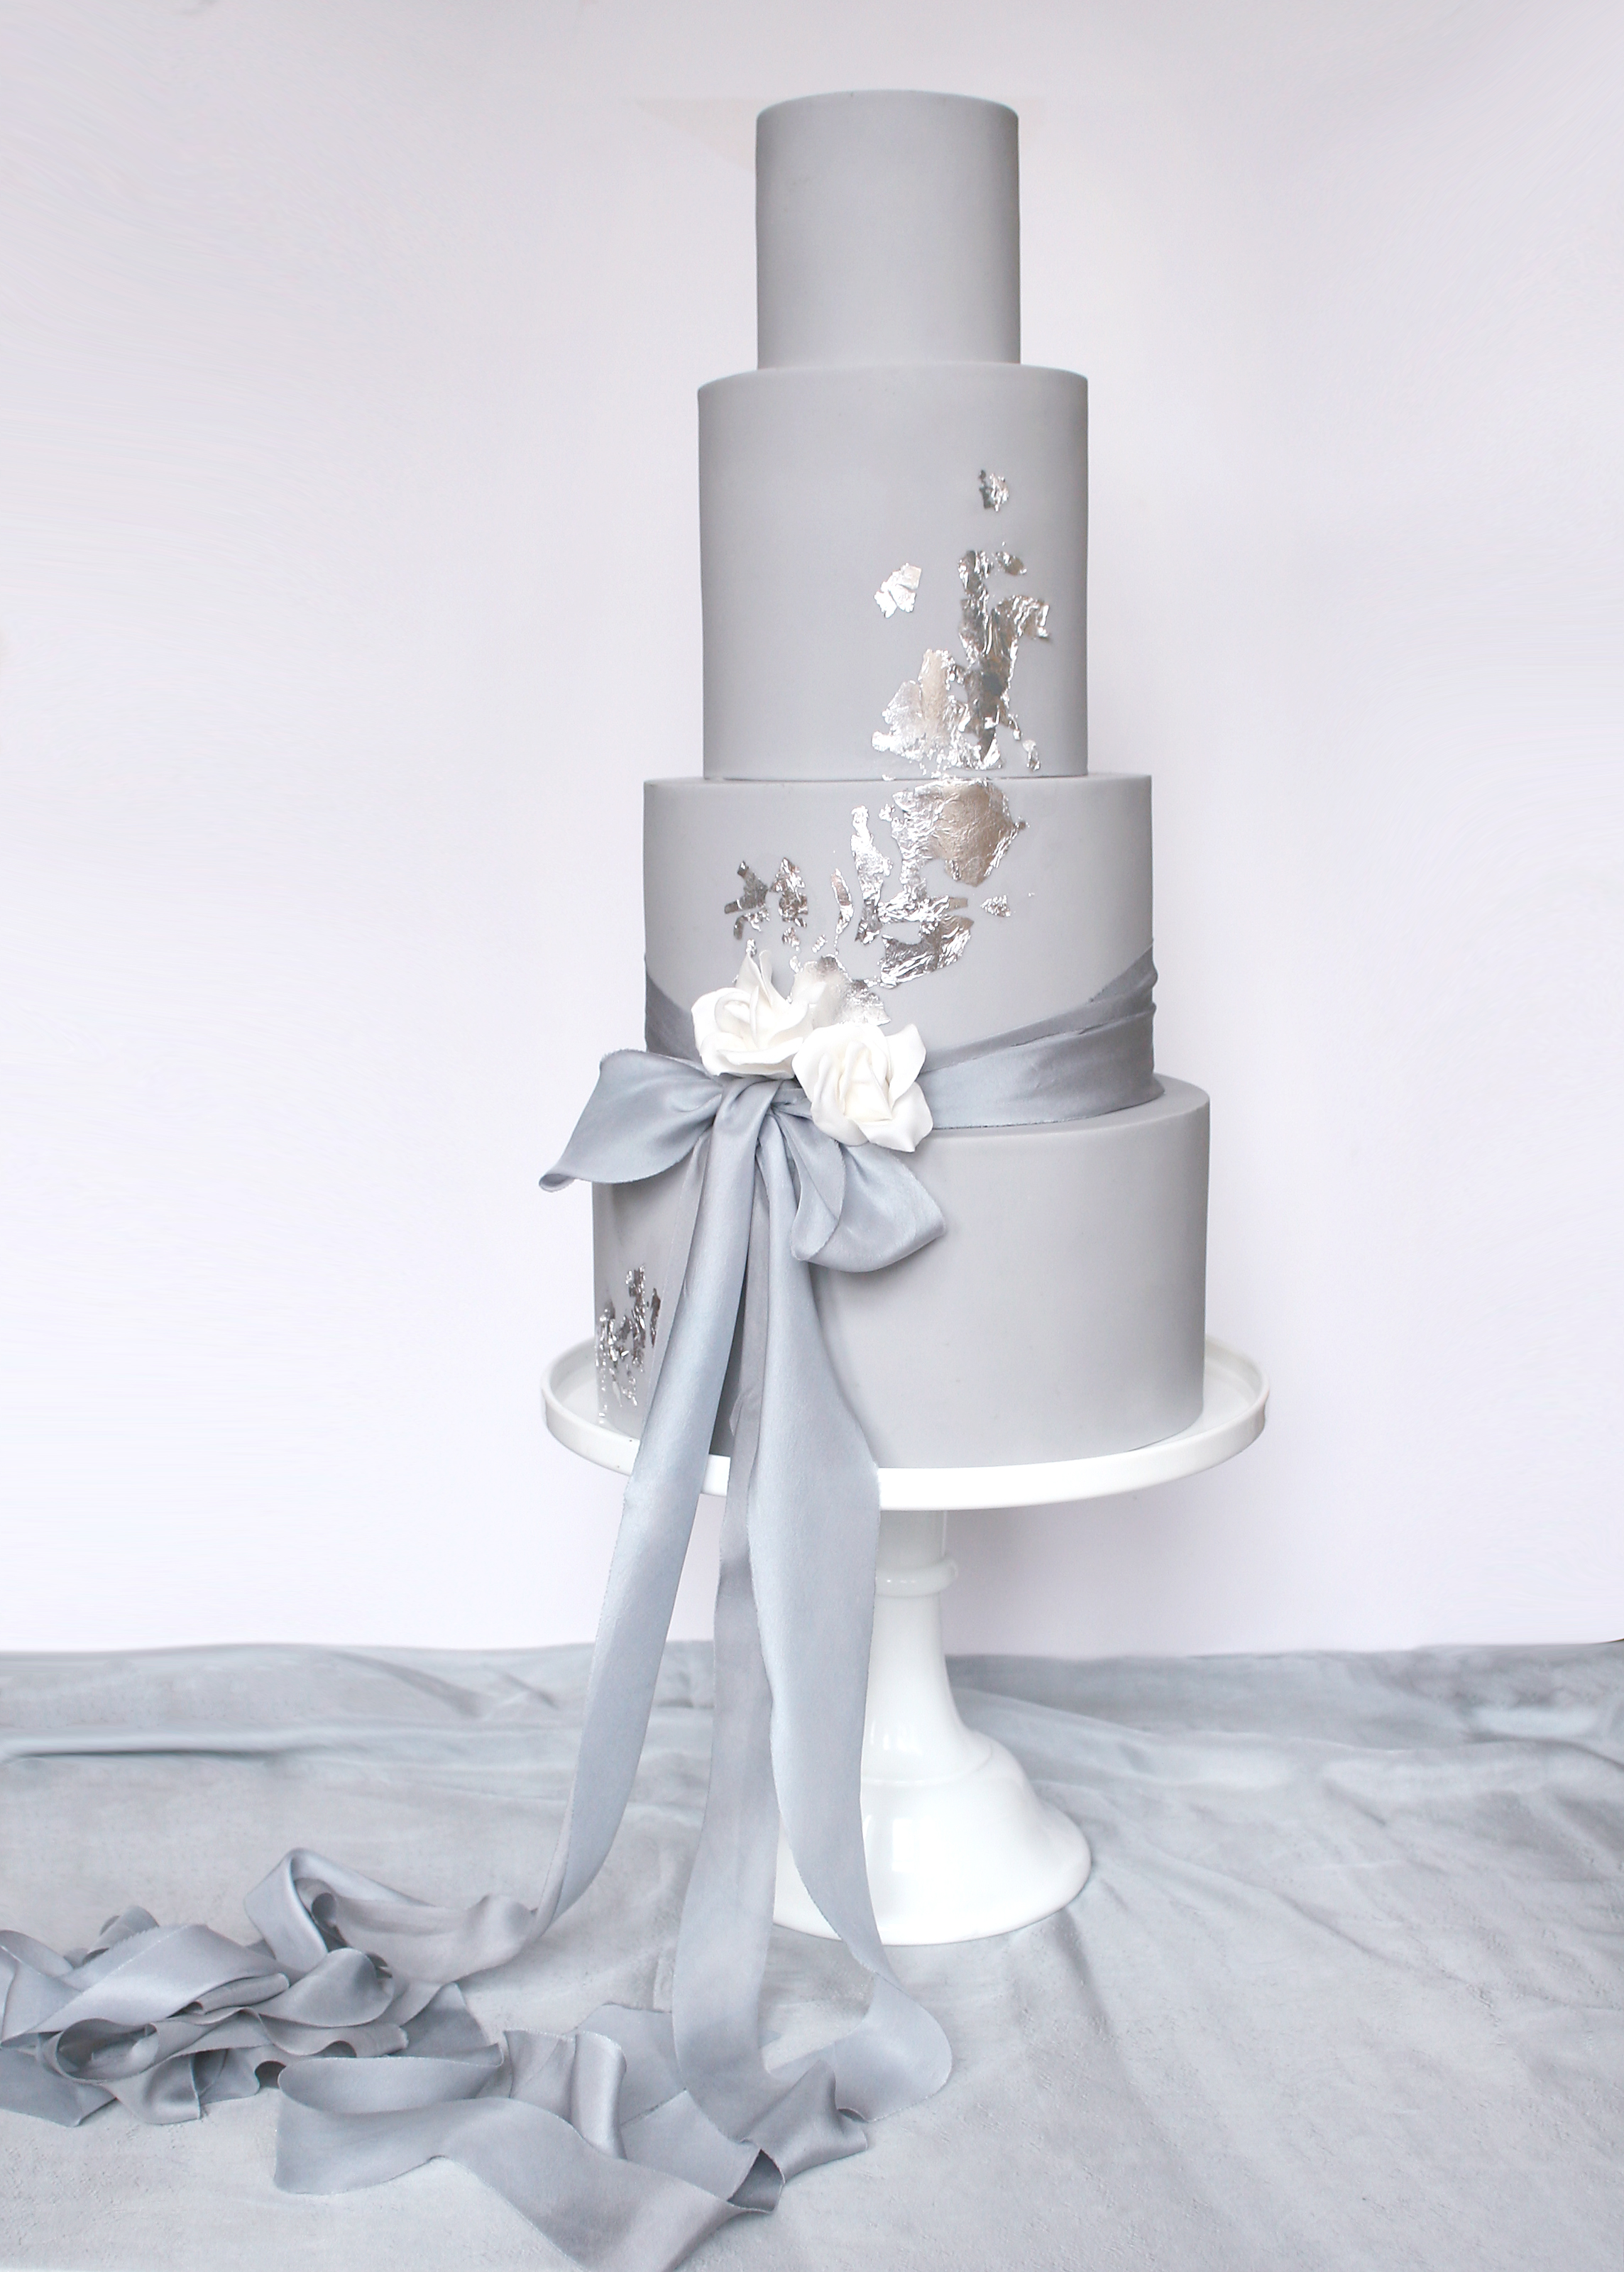 www.wildflowercakes.co.uk Minimalist Silver Cake.jpg